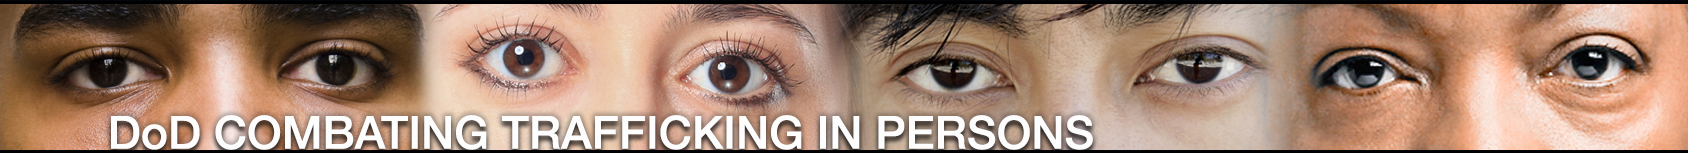 Combating Trafficking in Persons Banner with closeup on eyes of multiple merged faces